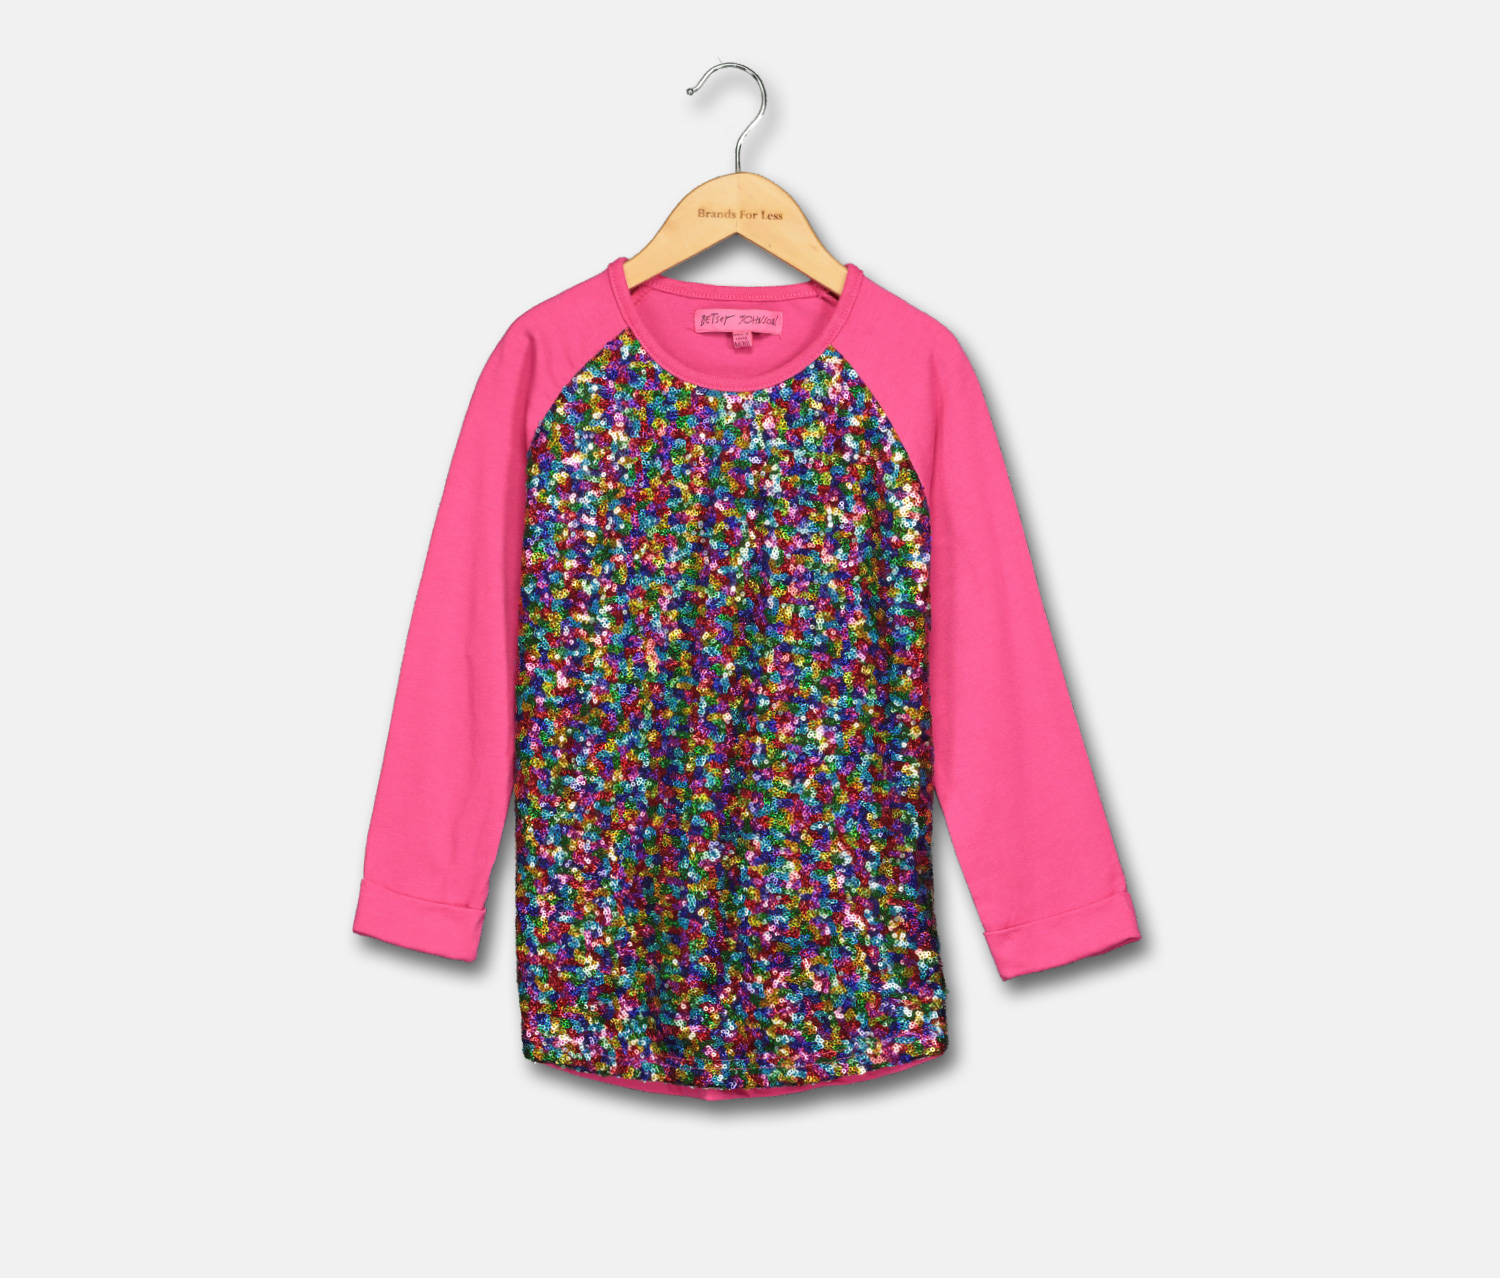 KIds Girls Sequin 3/4 Sleeve Top, Pink